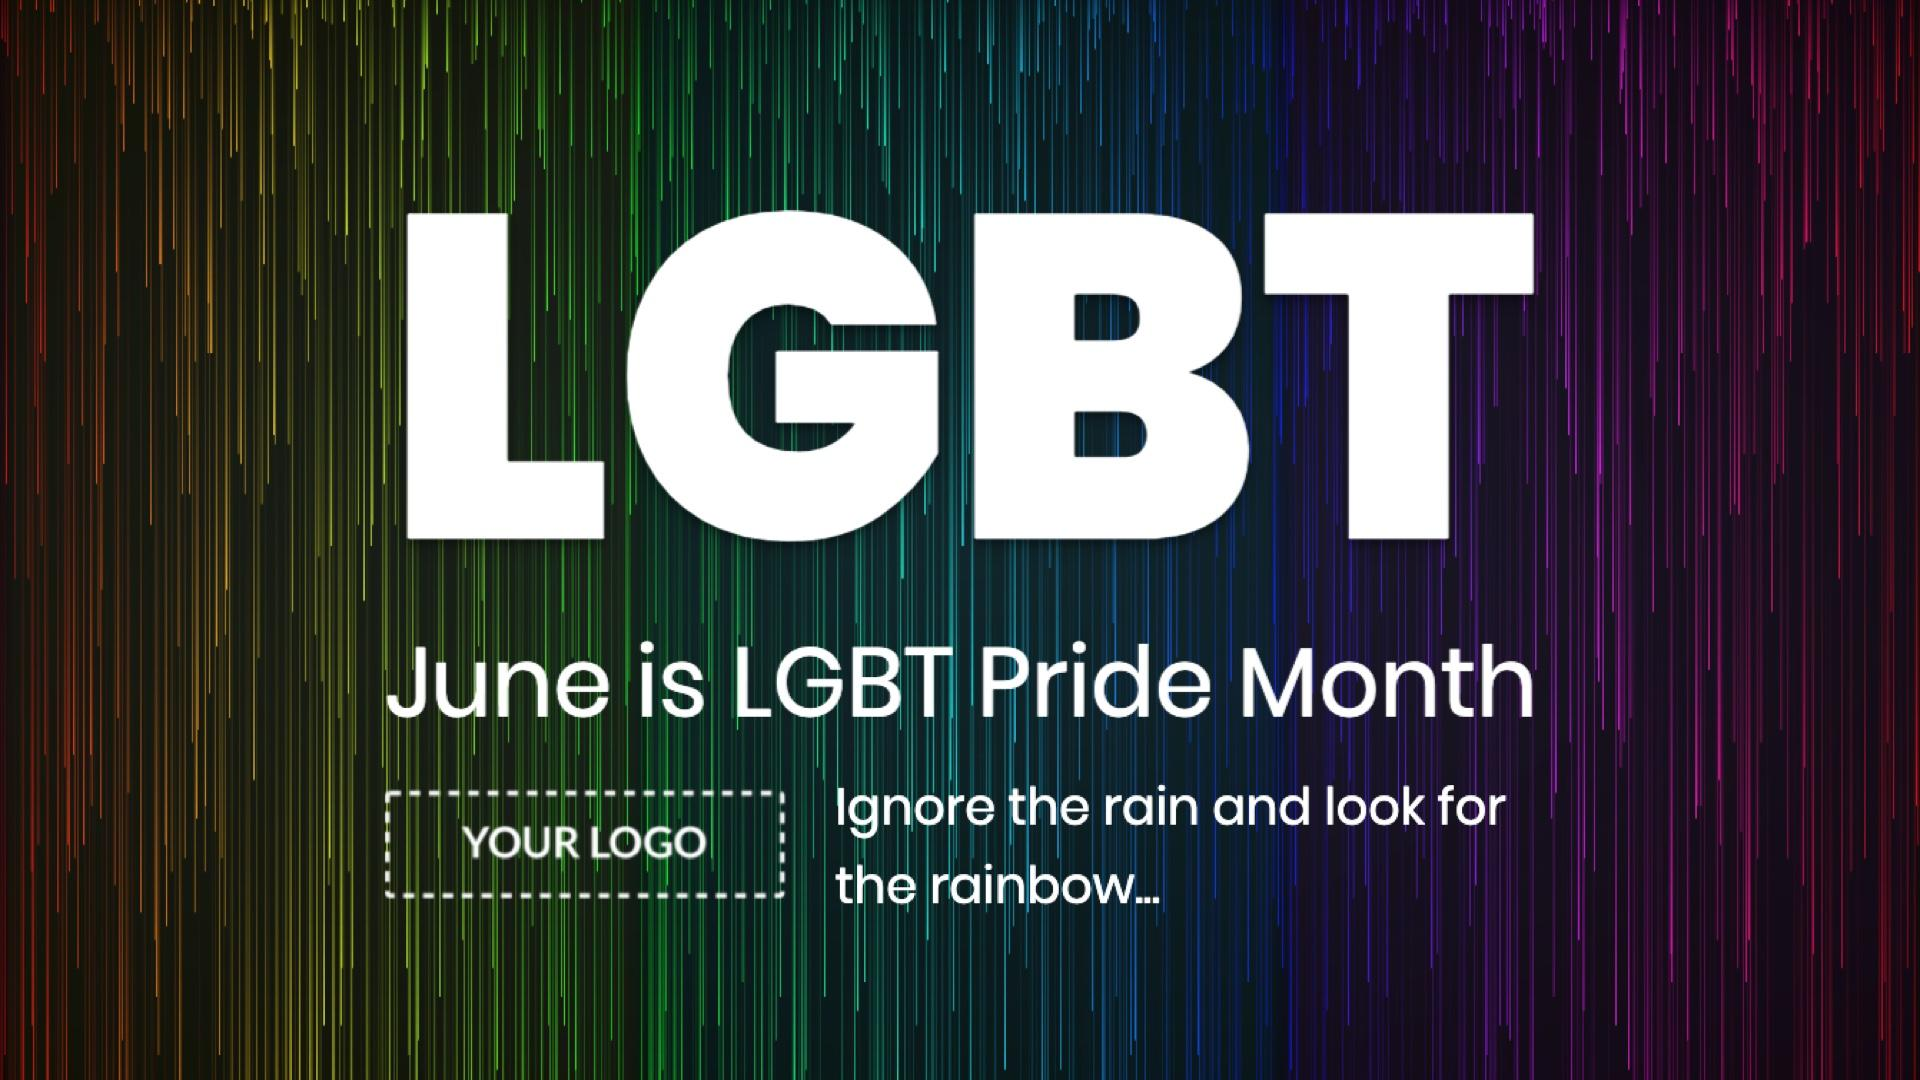 Campaign LGBT Pride Month Digital Signage Template